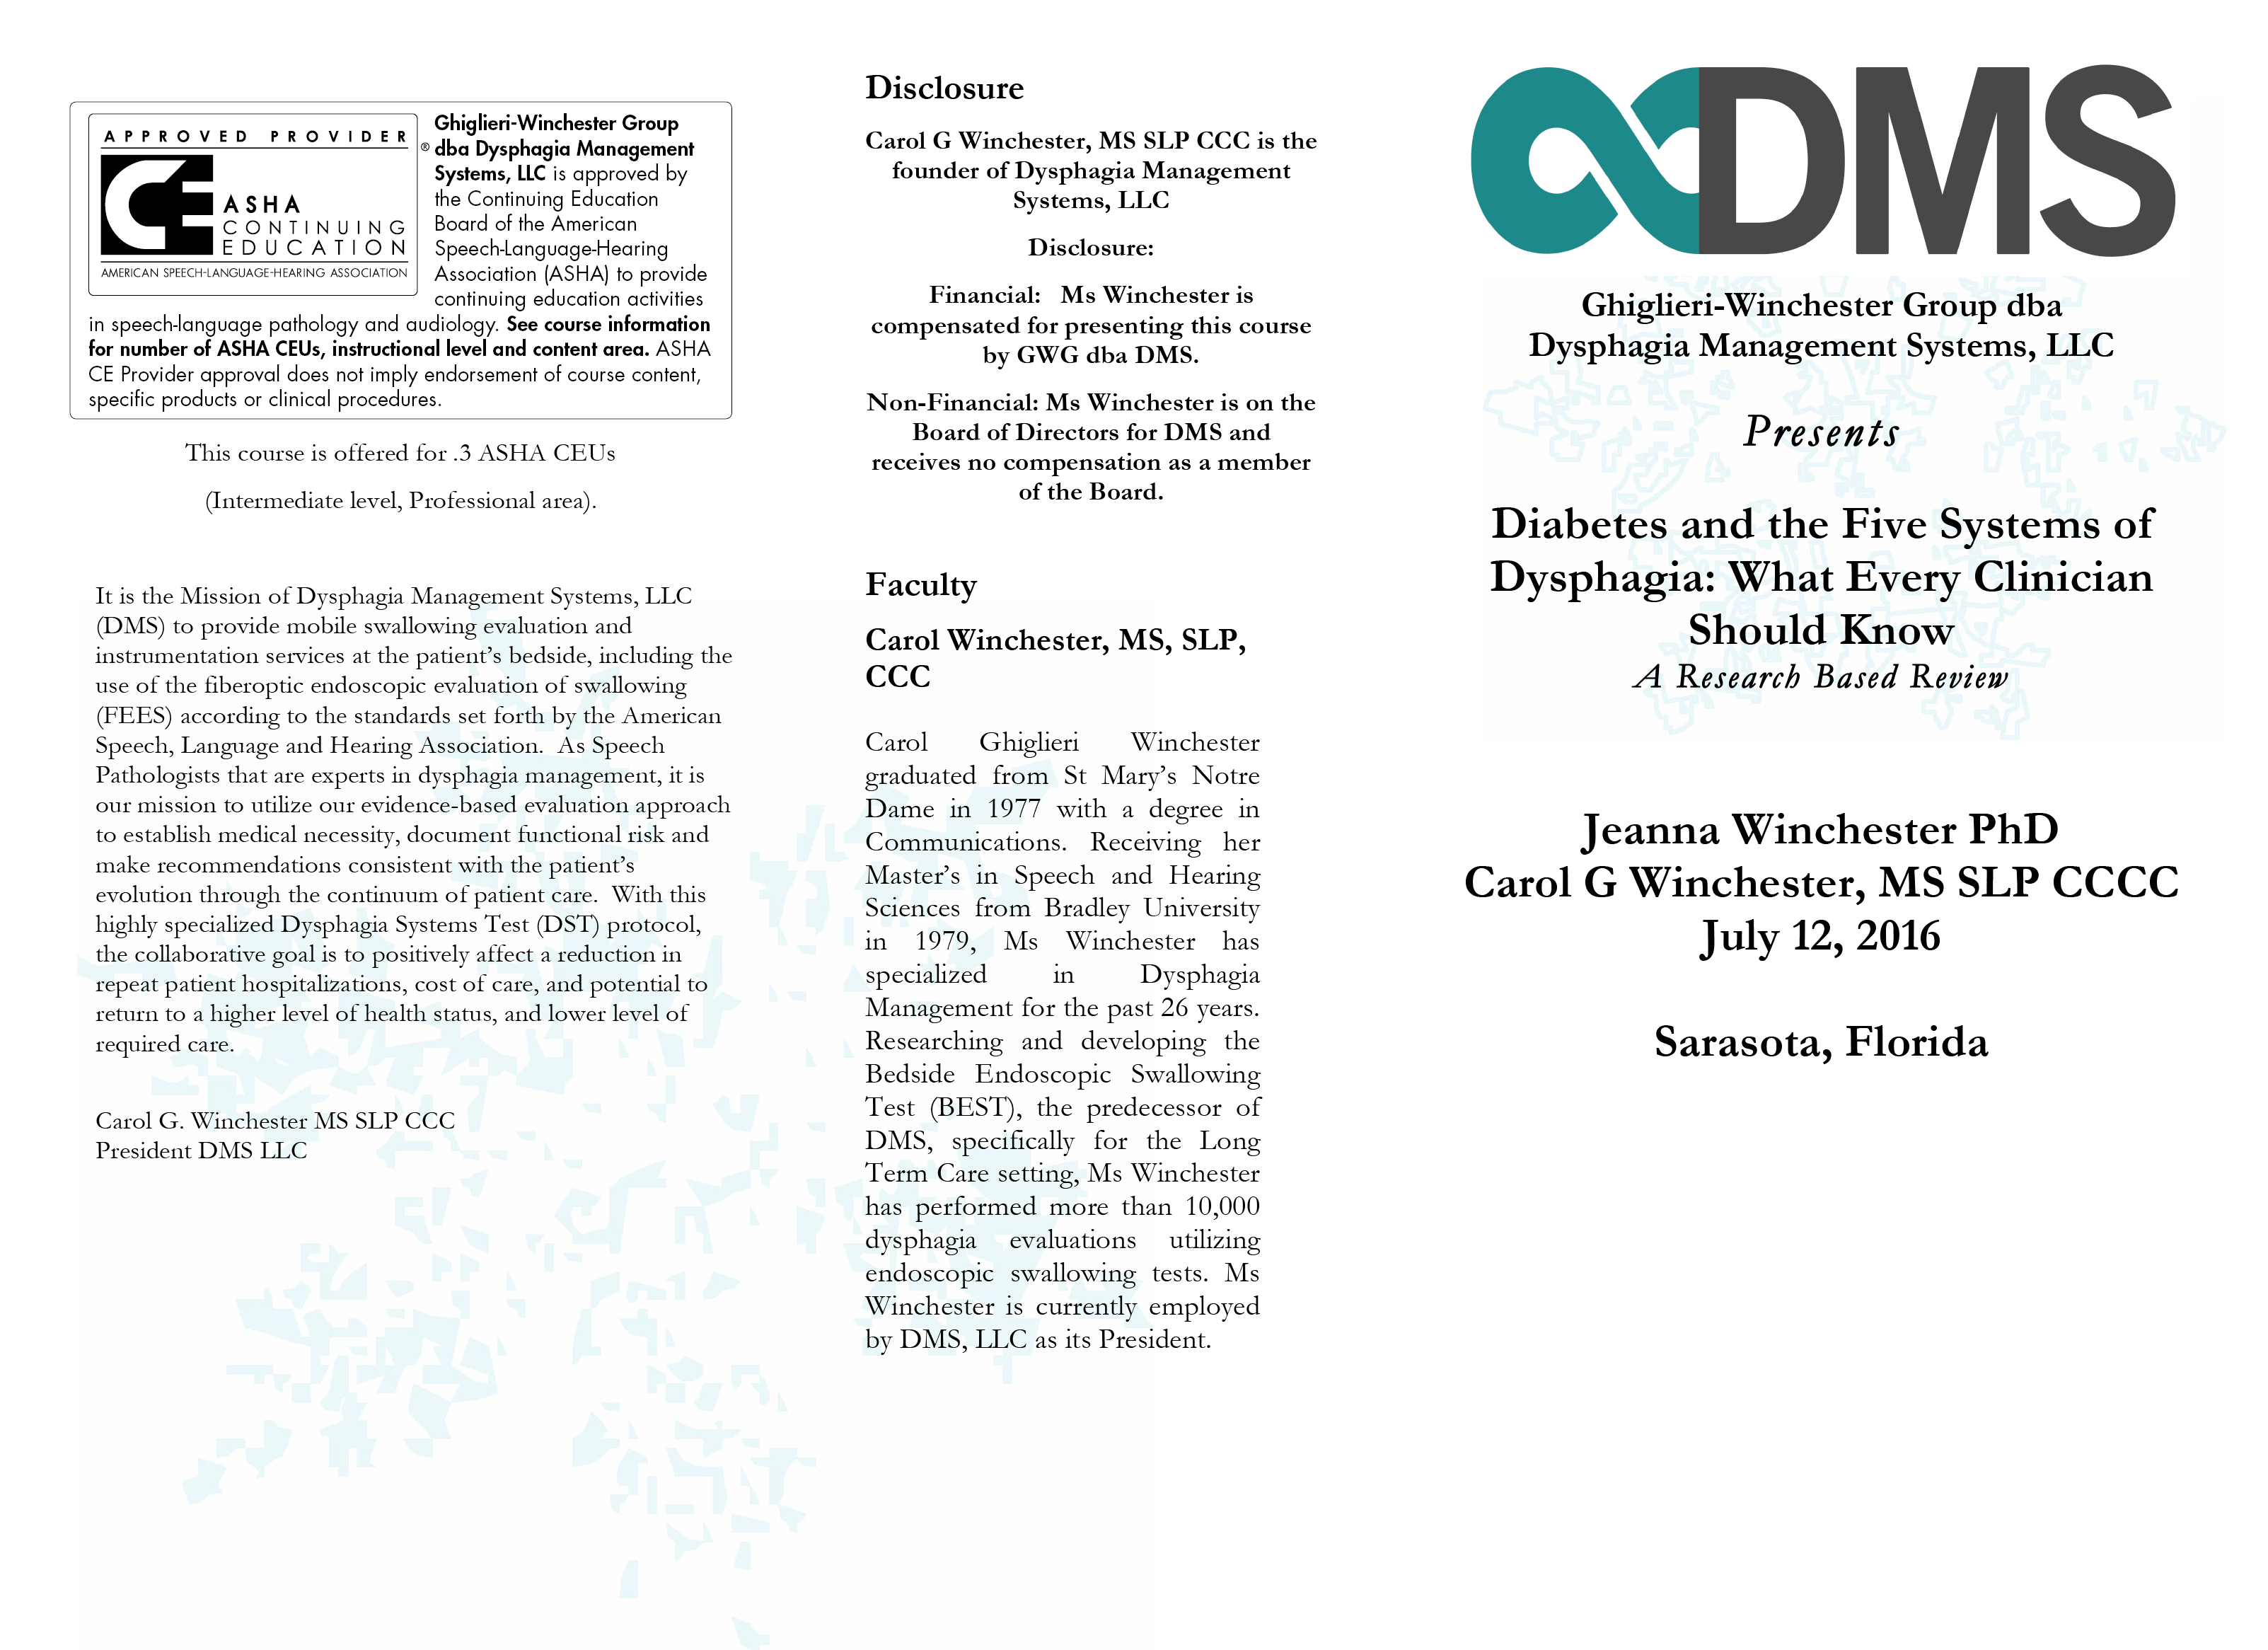 GWG-2916 Diabetes and The Five Systems Of Dysphagia, What Every Clinician Should Know 1